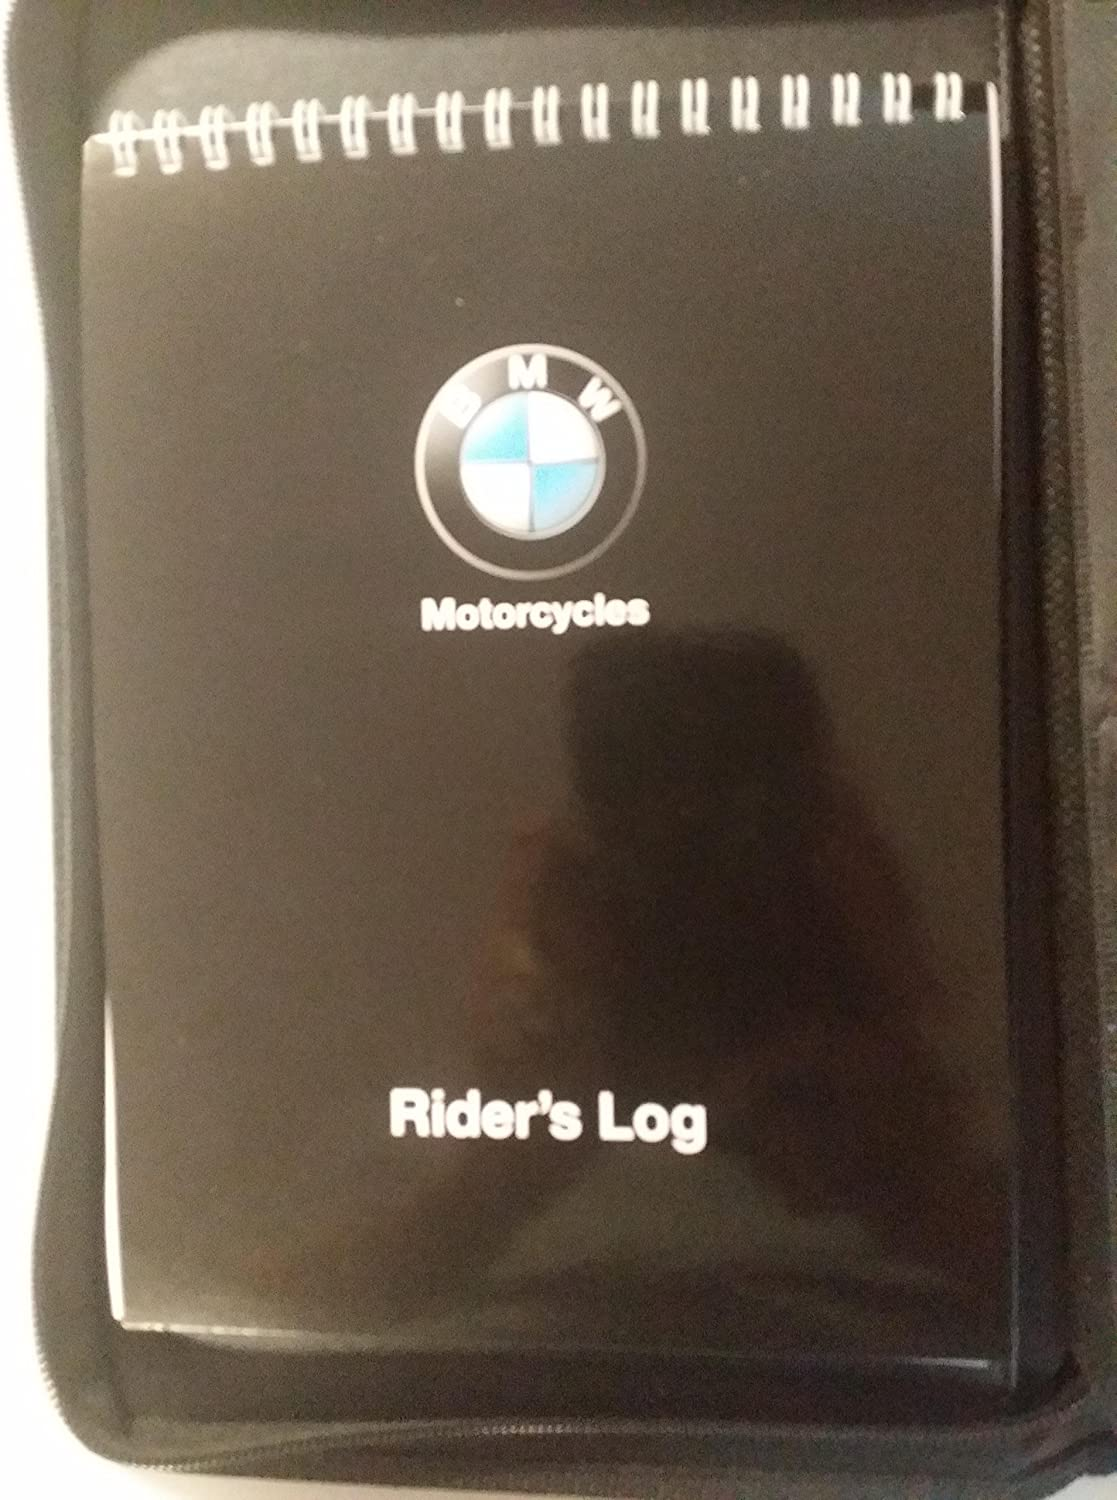 BMW XPLOR Motorcycle Fuel and Mileage Log Book with Insurance Holder and Pen